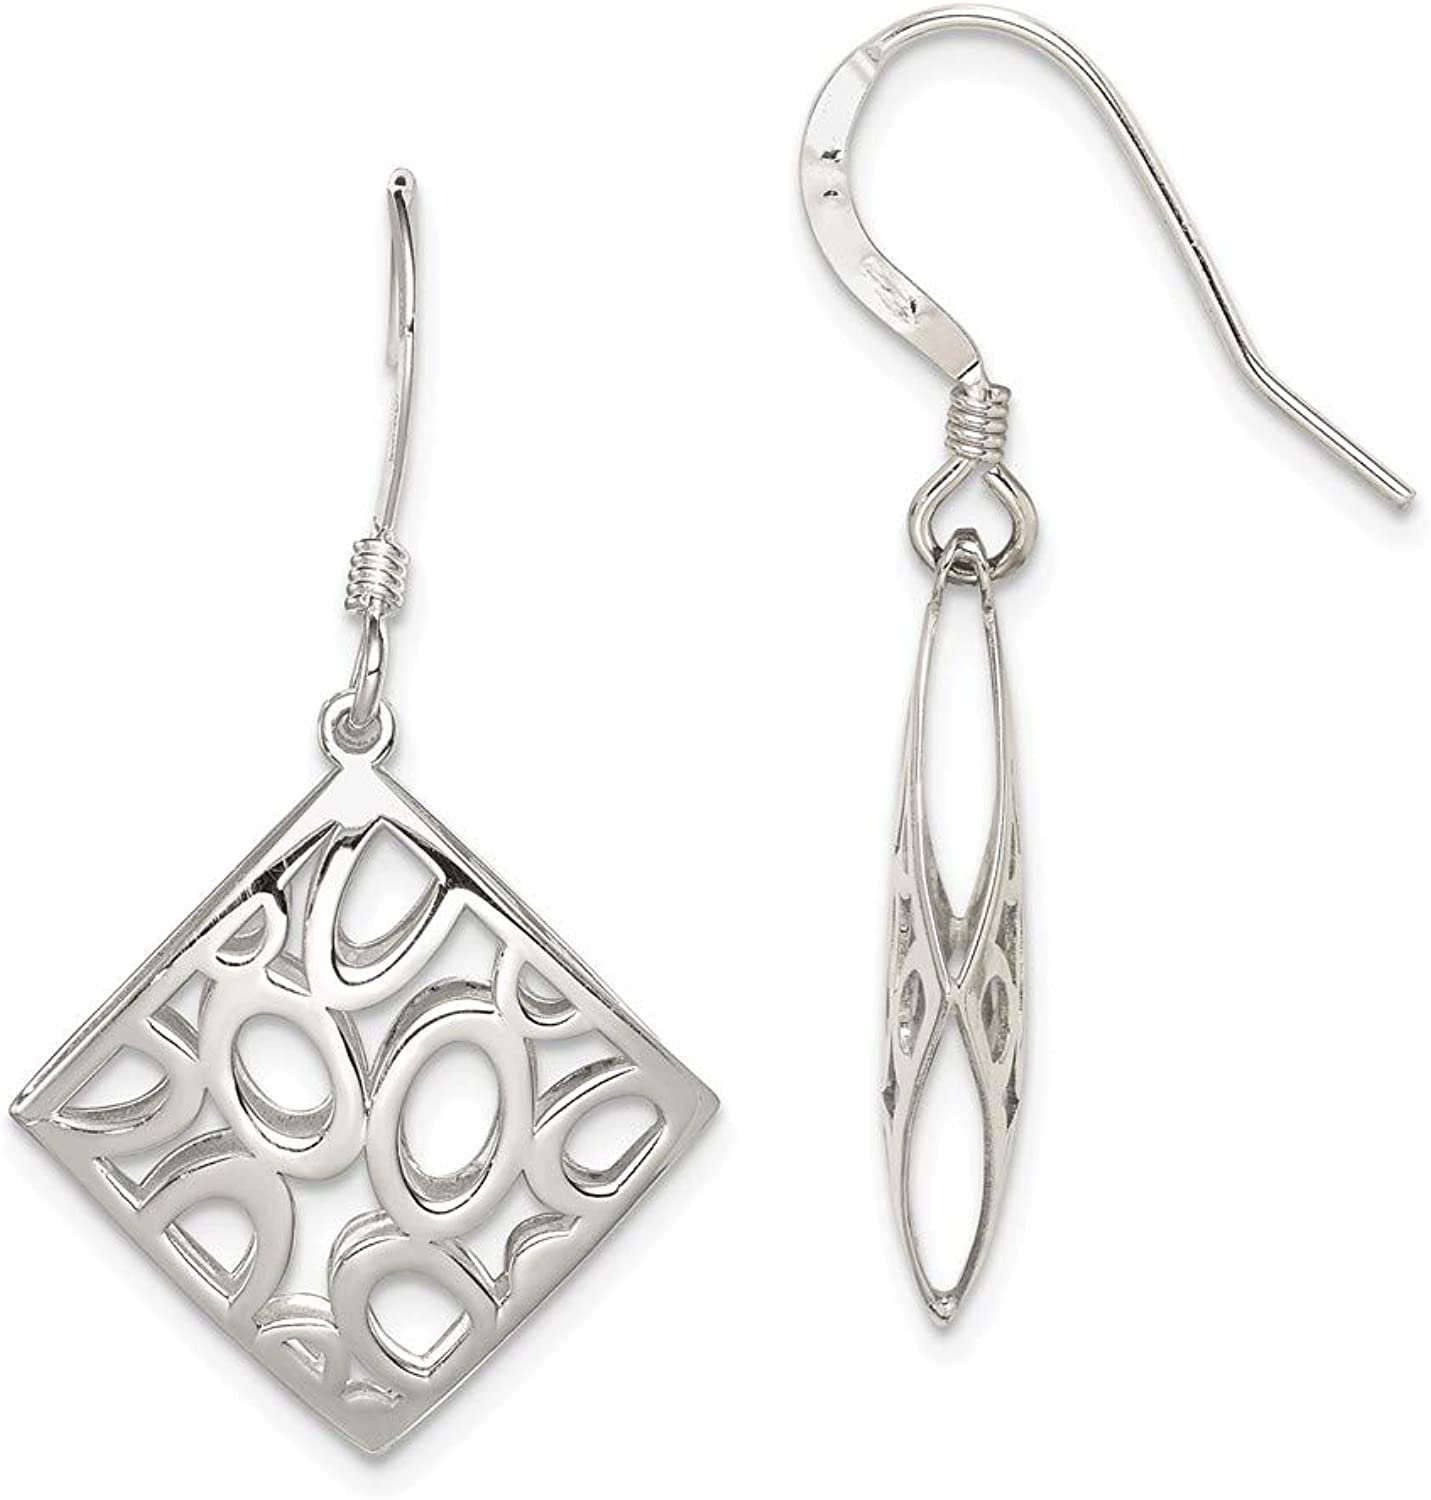 Beautiful Sterling silver 925 sterling Sterling Silver Polished Square with Circles Dangle Earrings